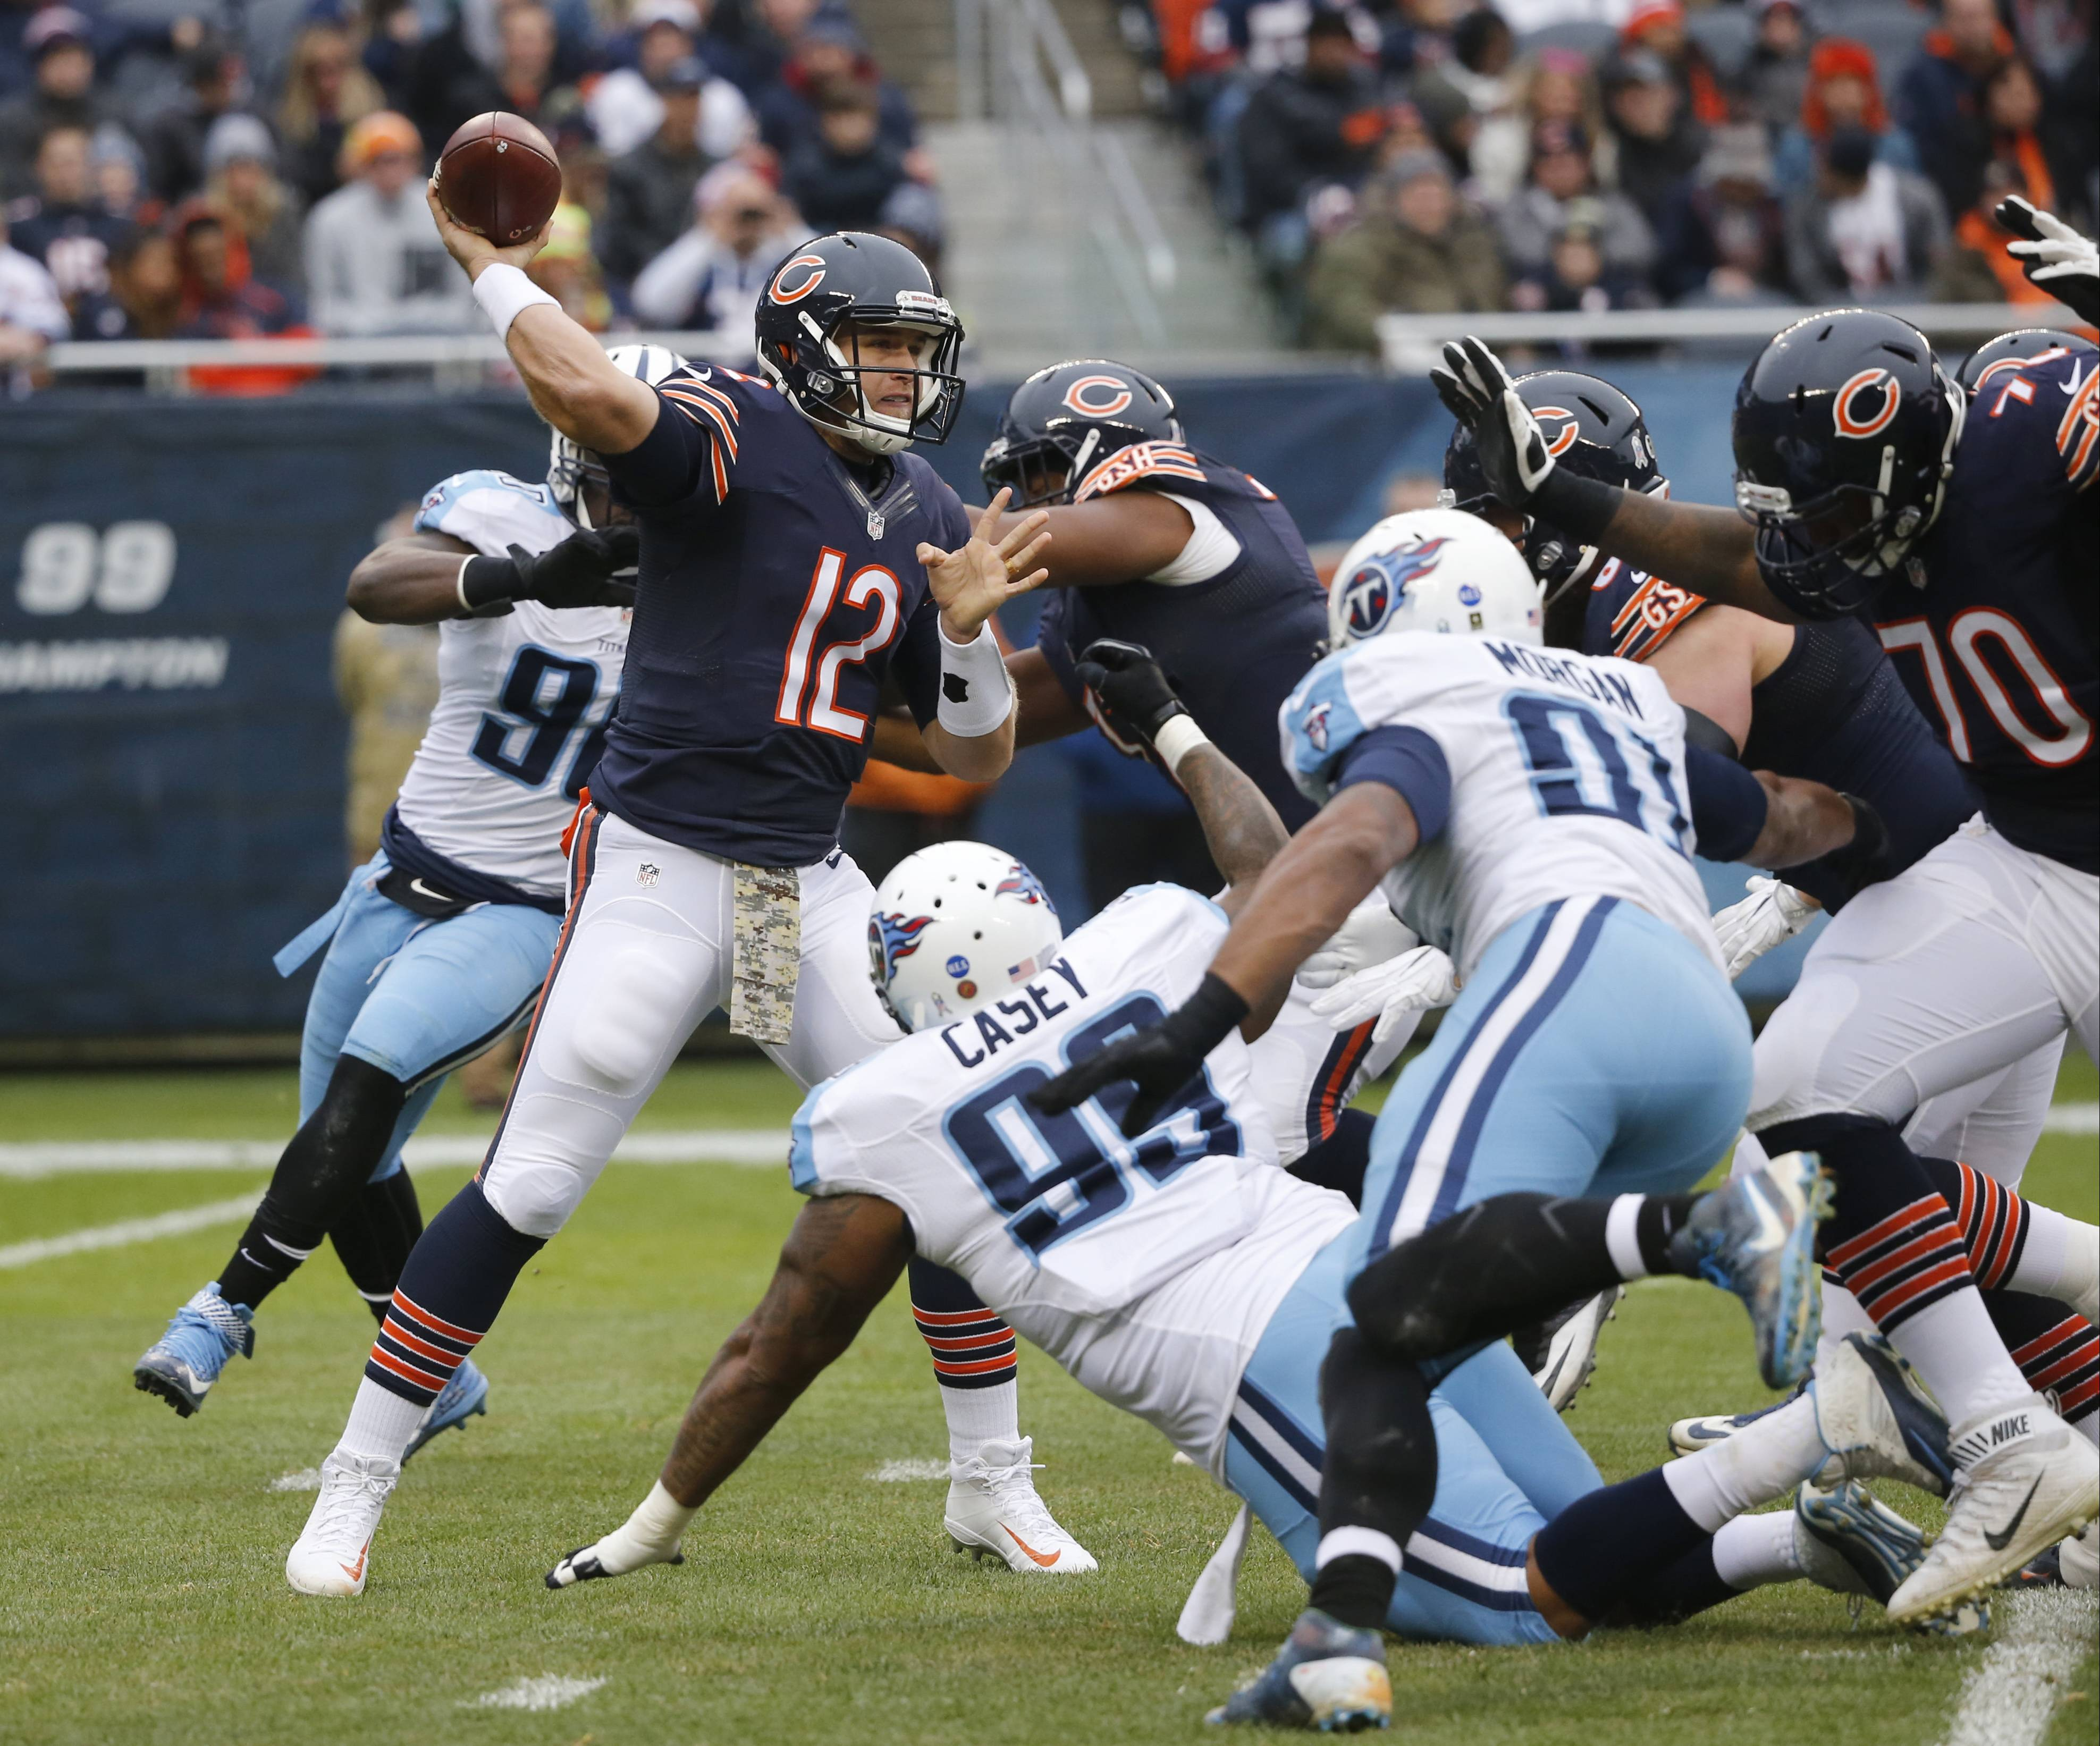 Chicago Bears quarterback Matt Barkley (12) throws a pass under pressure during the first half of an NFL football game against the Tennessee Titans, Sunday, Nov. 27, 2016, in Chicago.